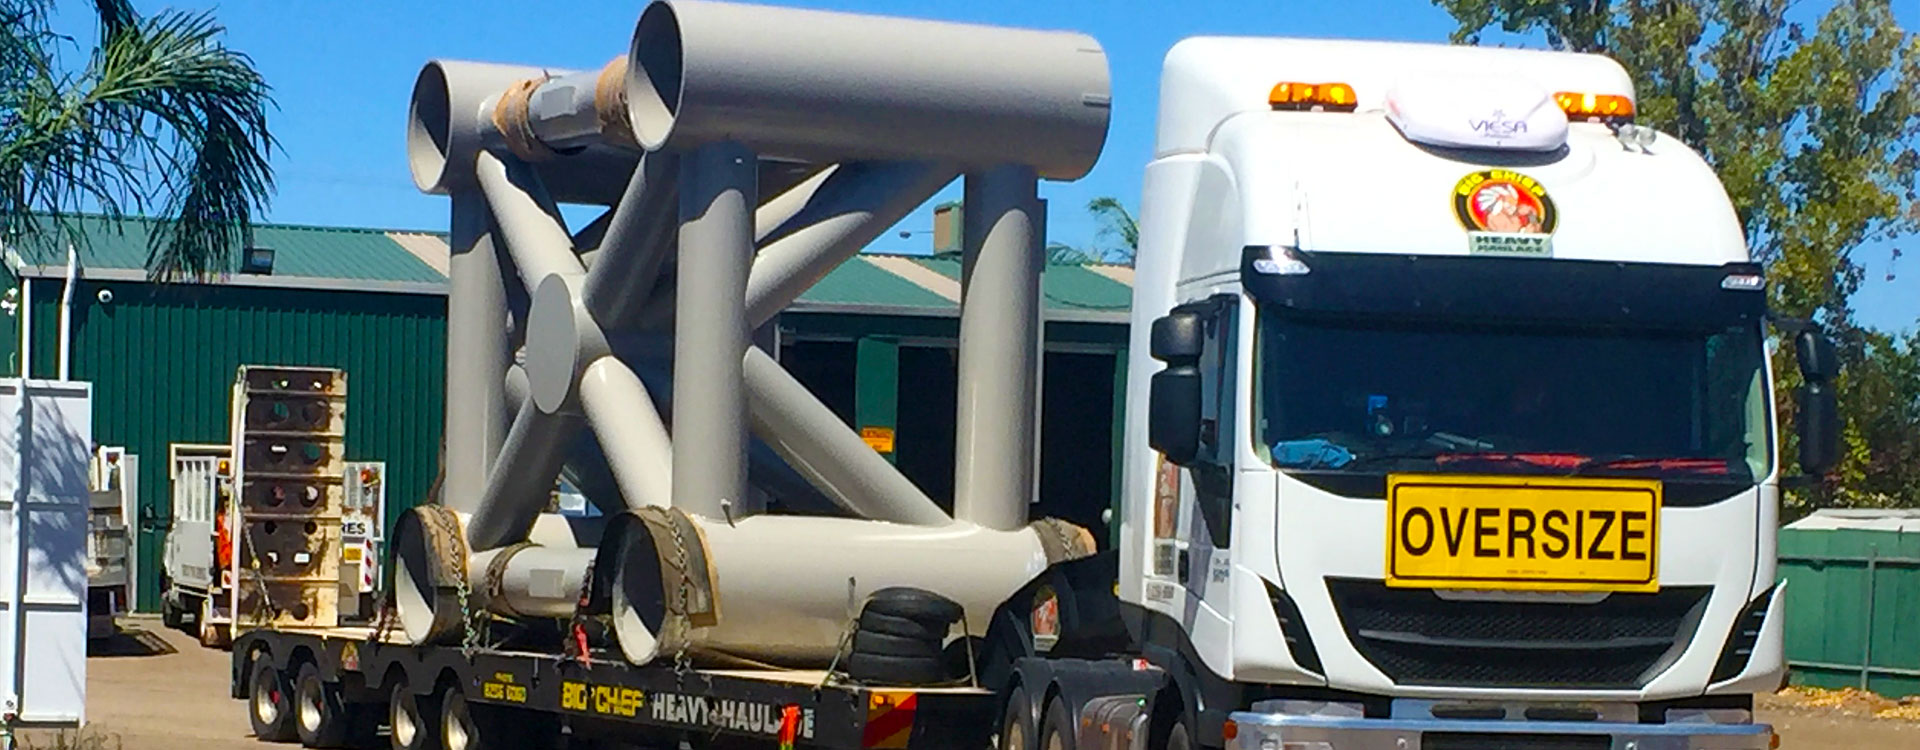 Big Chief Heavy Haulage Transport Truck with Over Size load